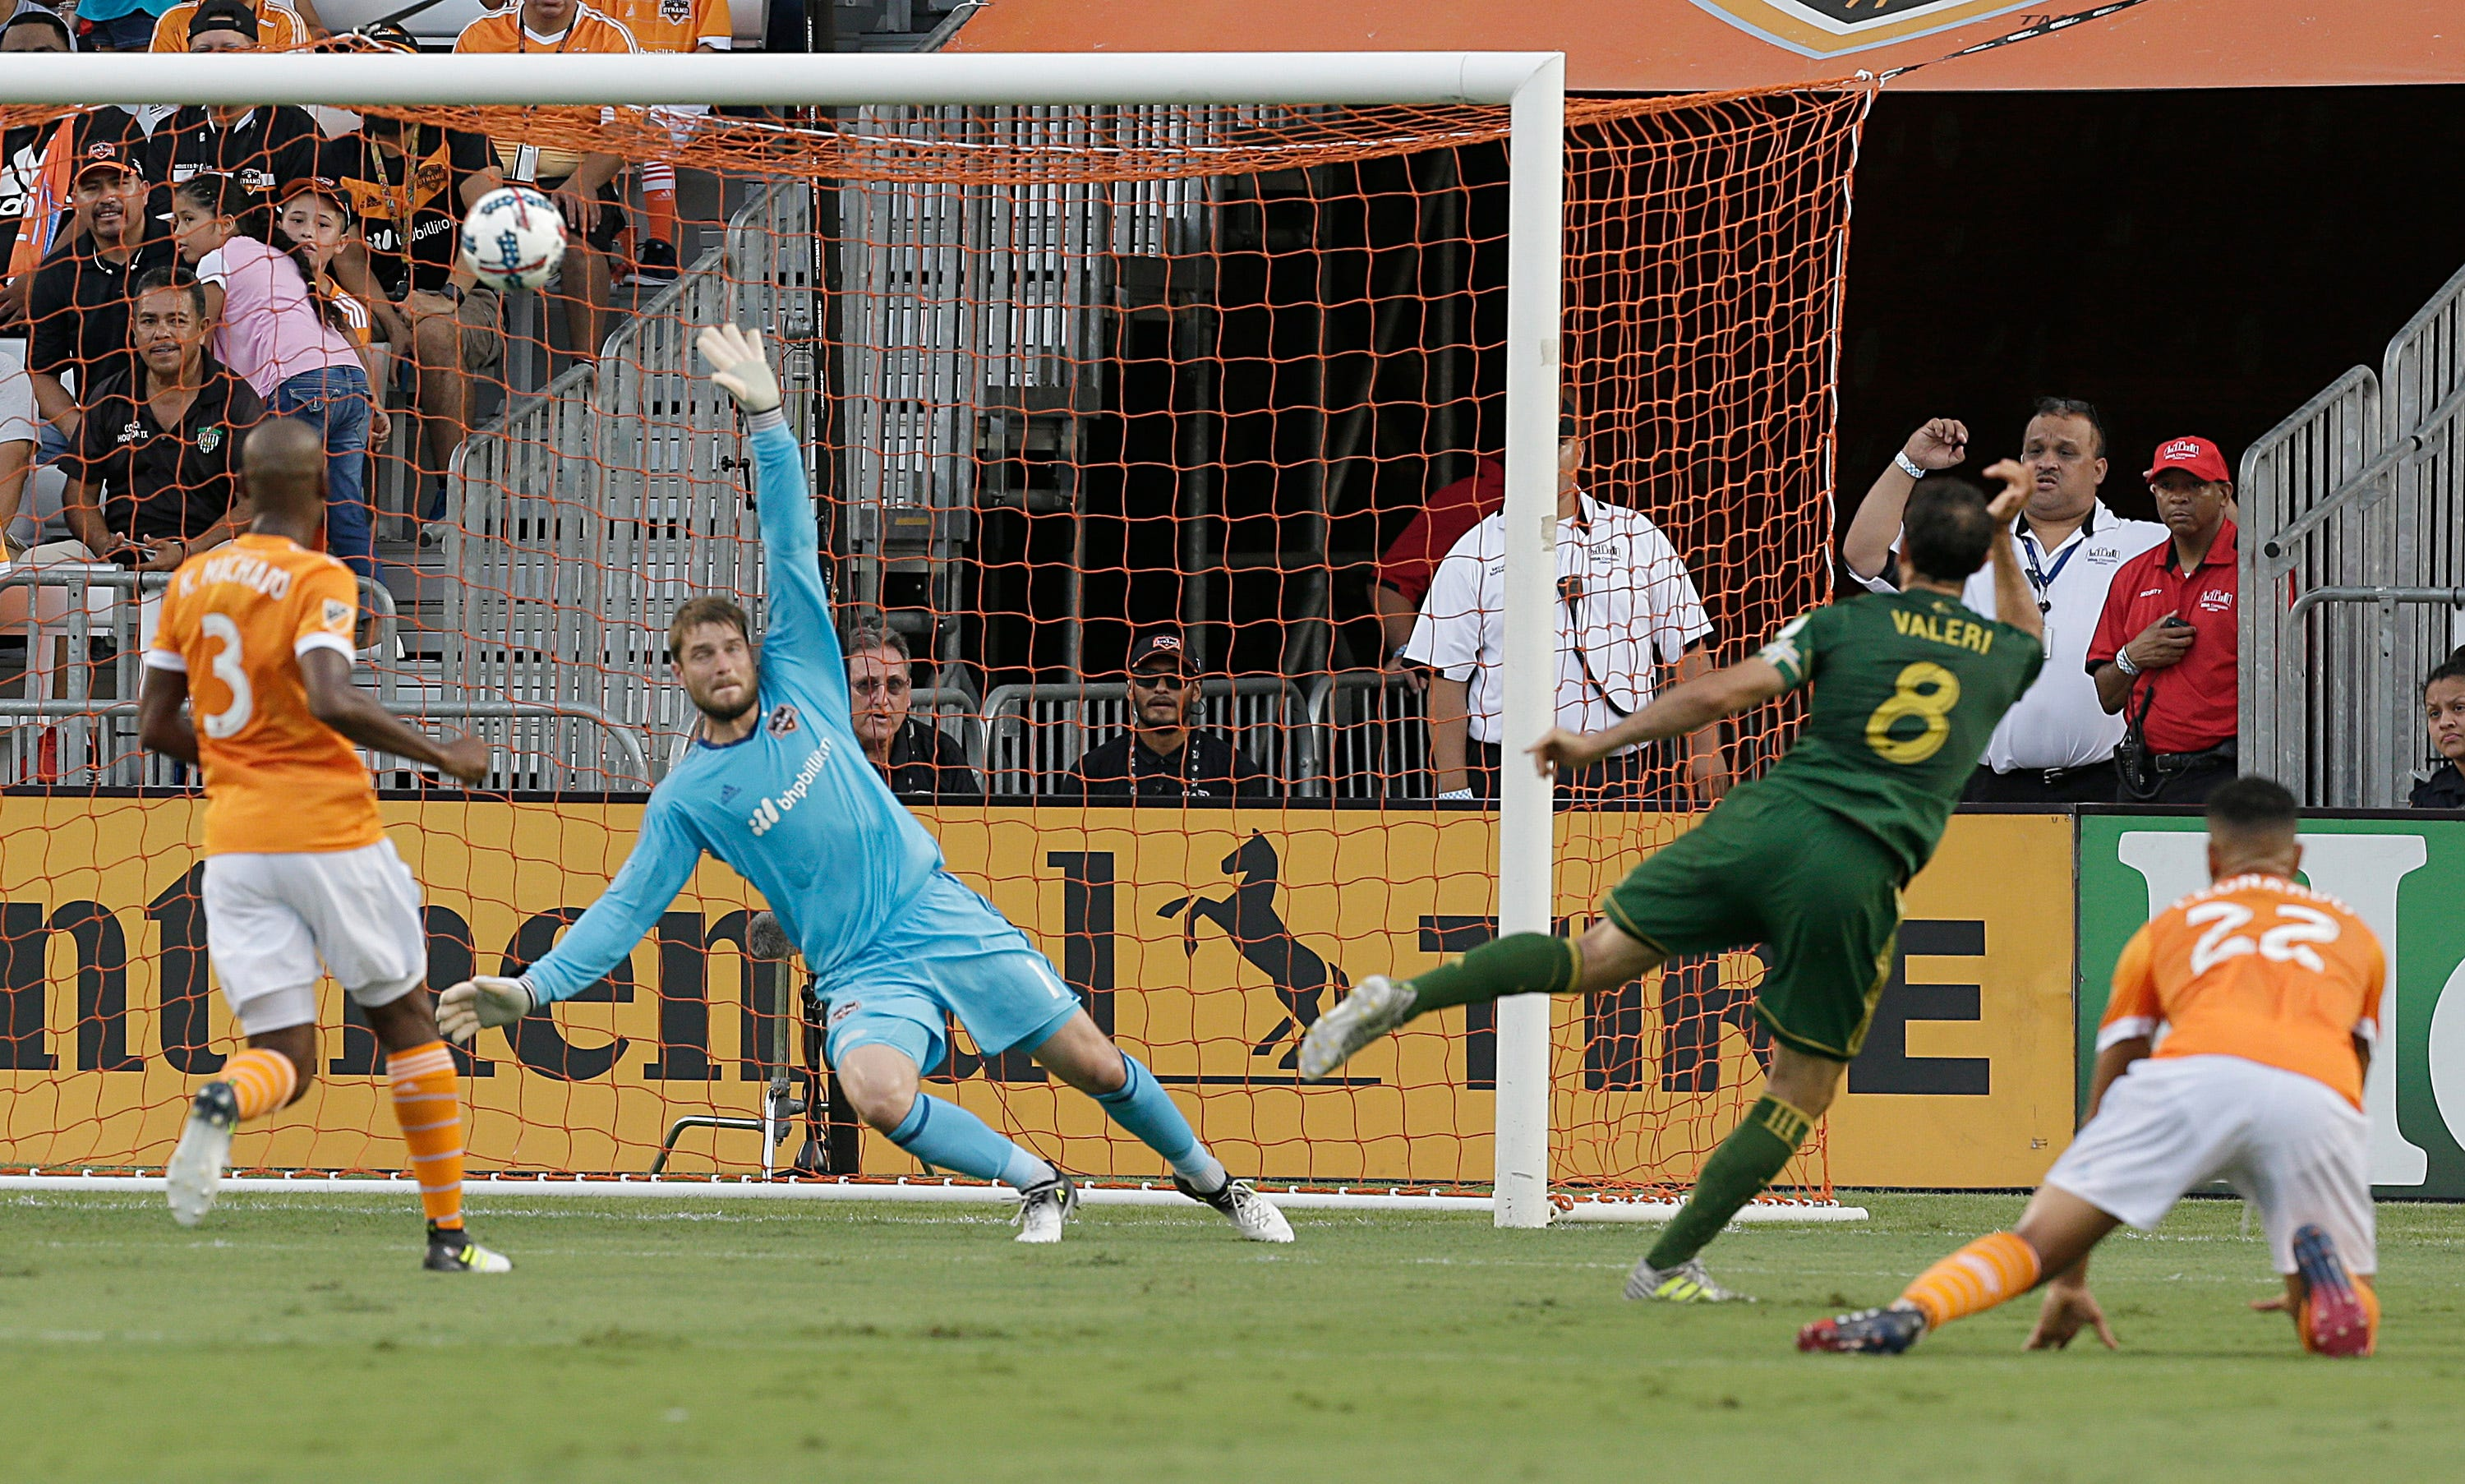 Cabezas scores late goal to give Dynamo 2-2 tie with Timbers